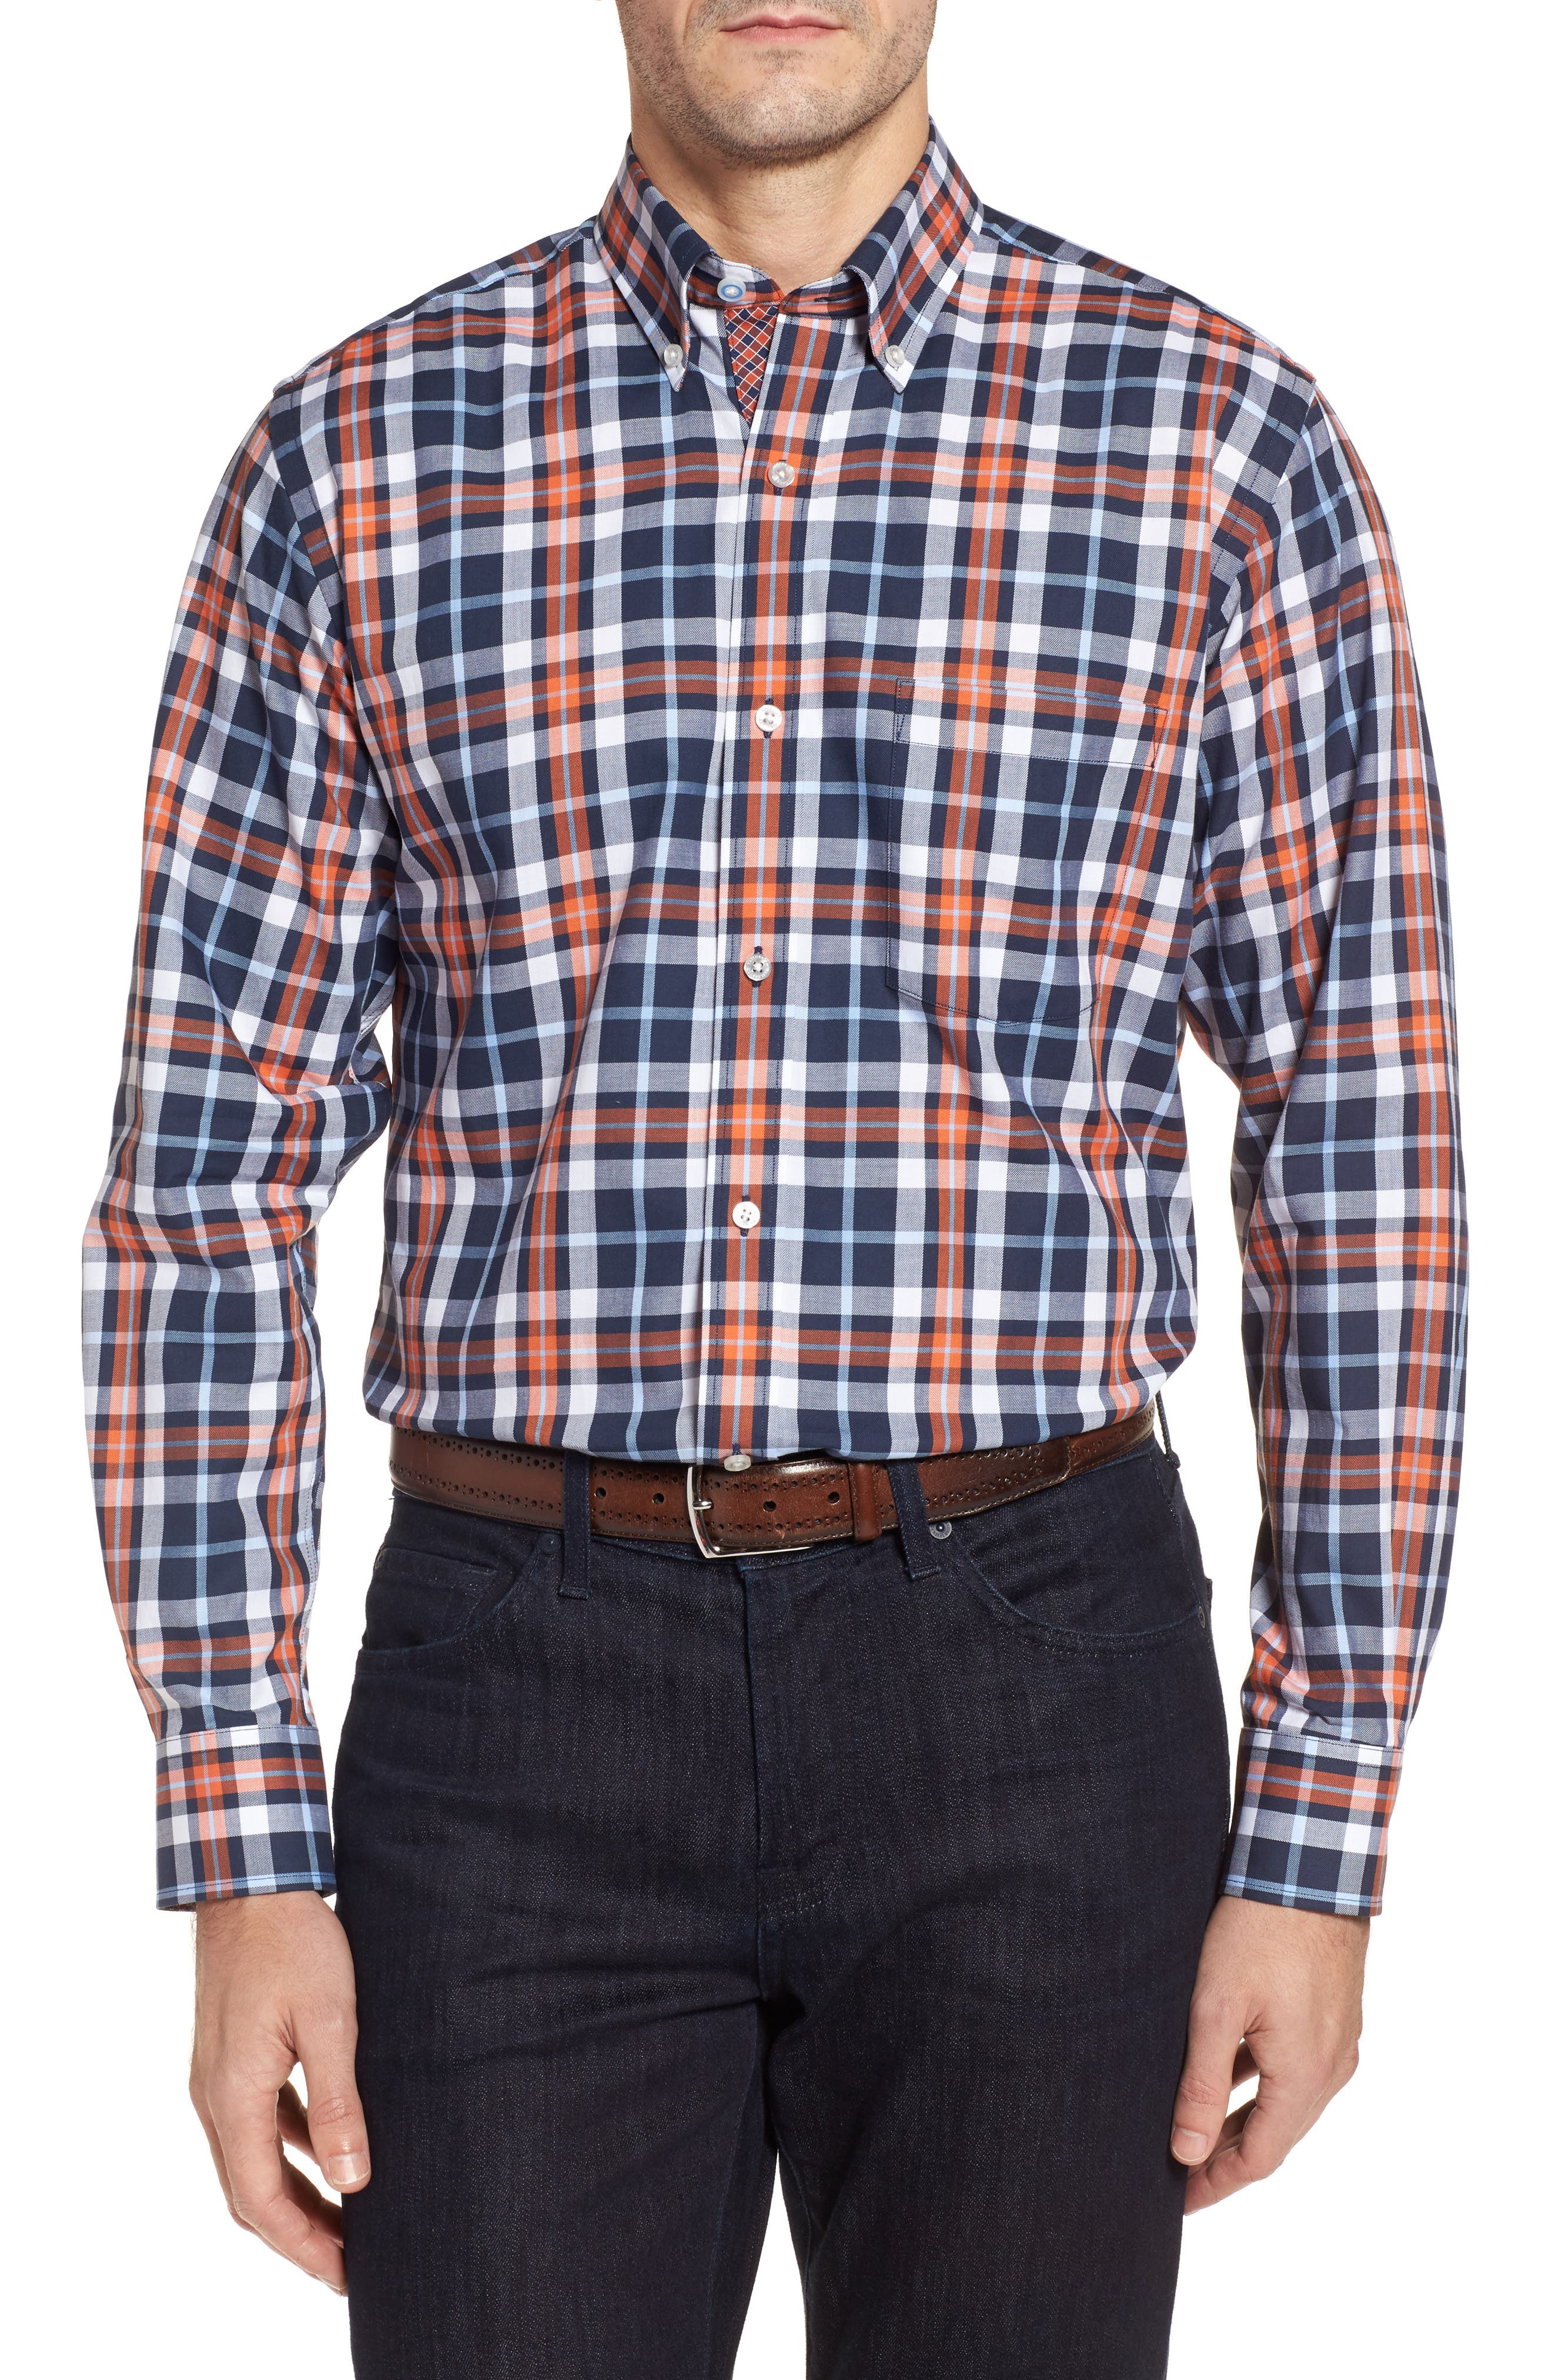 Main Image - TailorByrd Crowley Plaid Twill Sport Shirt